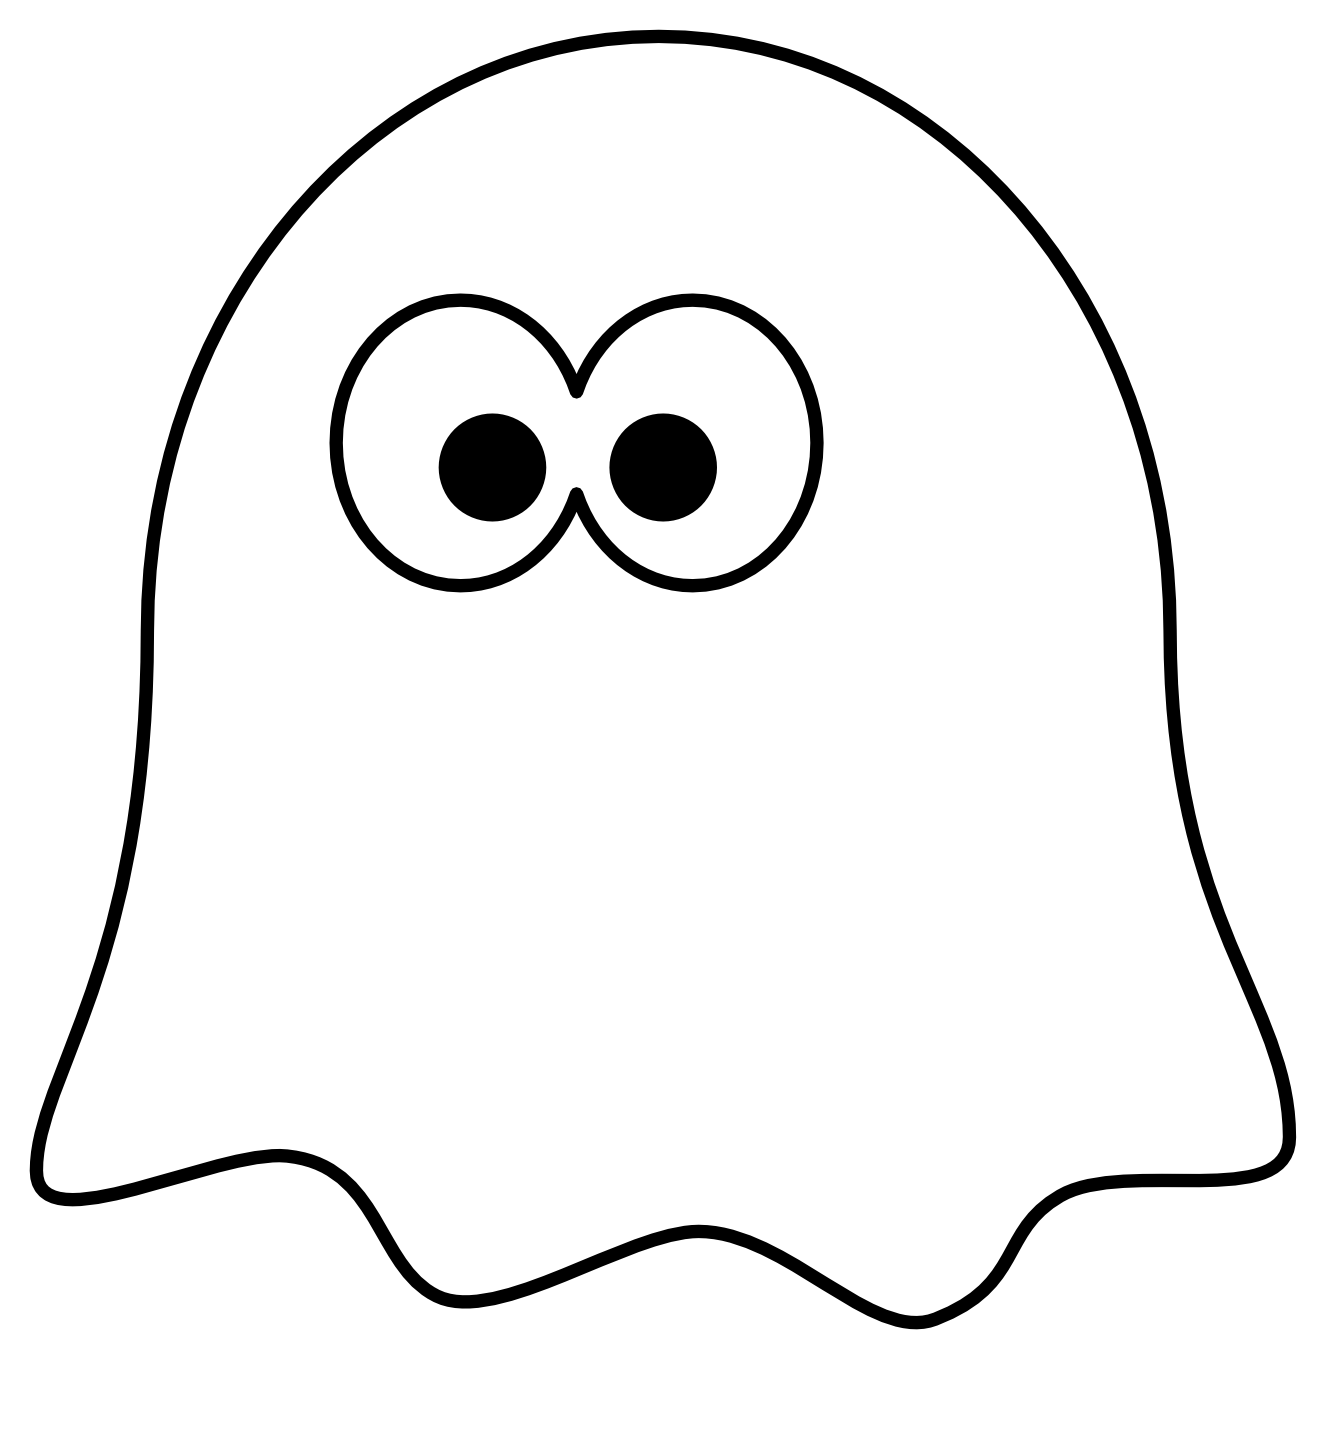 Ghost clipart cartoon, Ghost cartoon Transparent FREE for ...